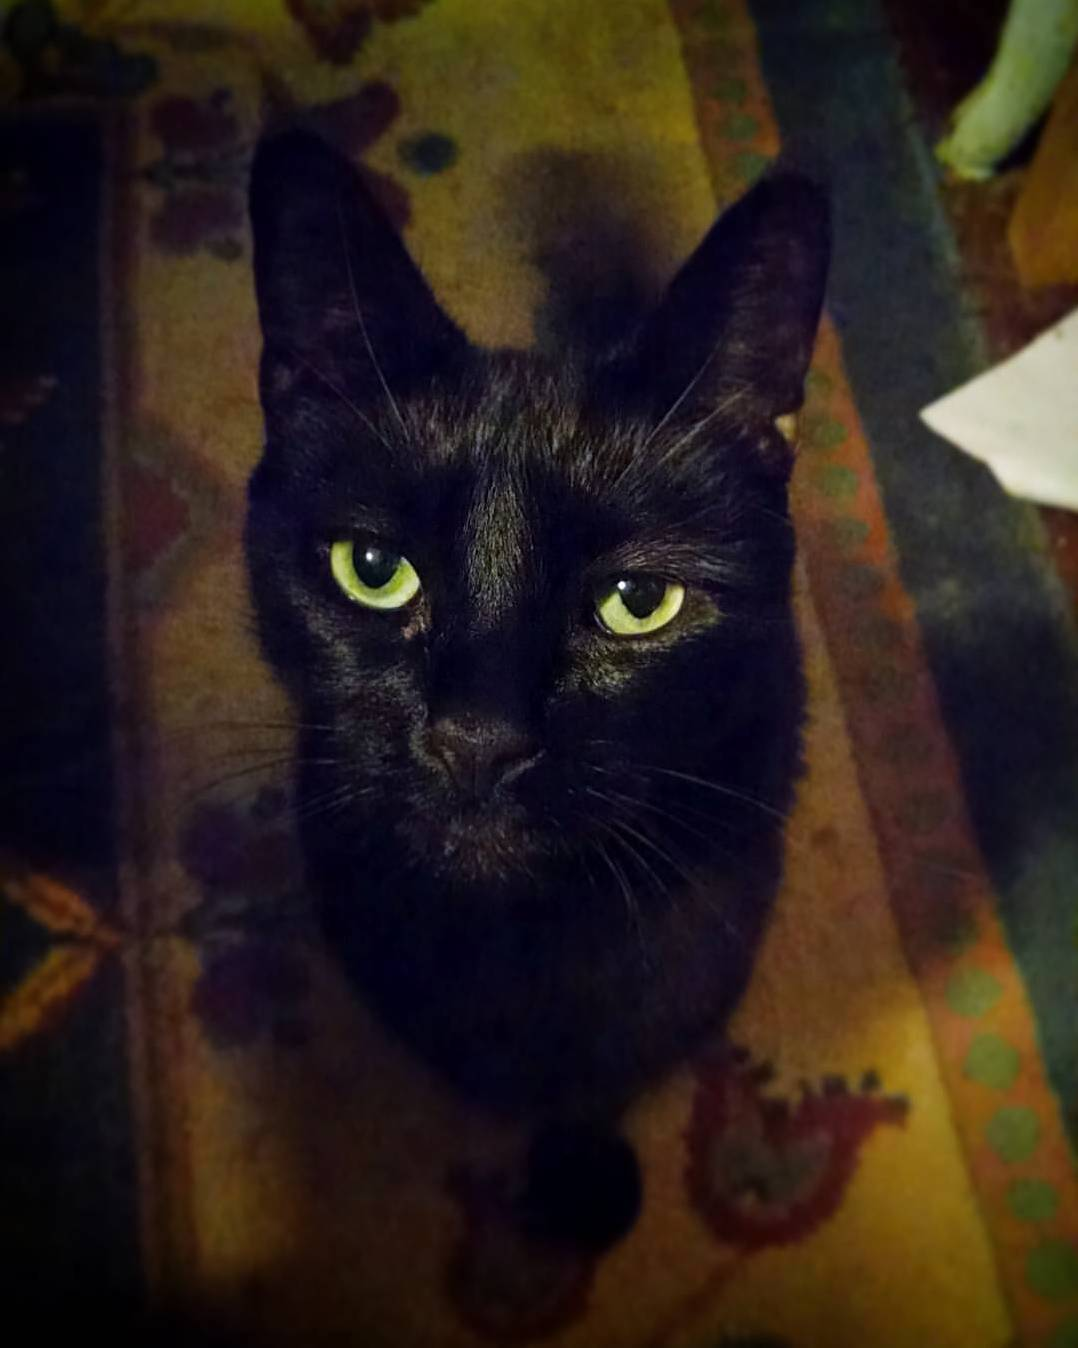 Kitty Did Not Approve Of Me Taking Pictures. | Cute cats ...